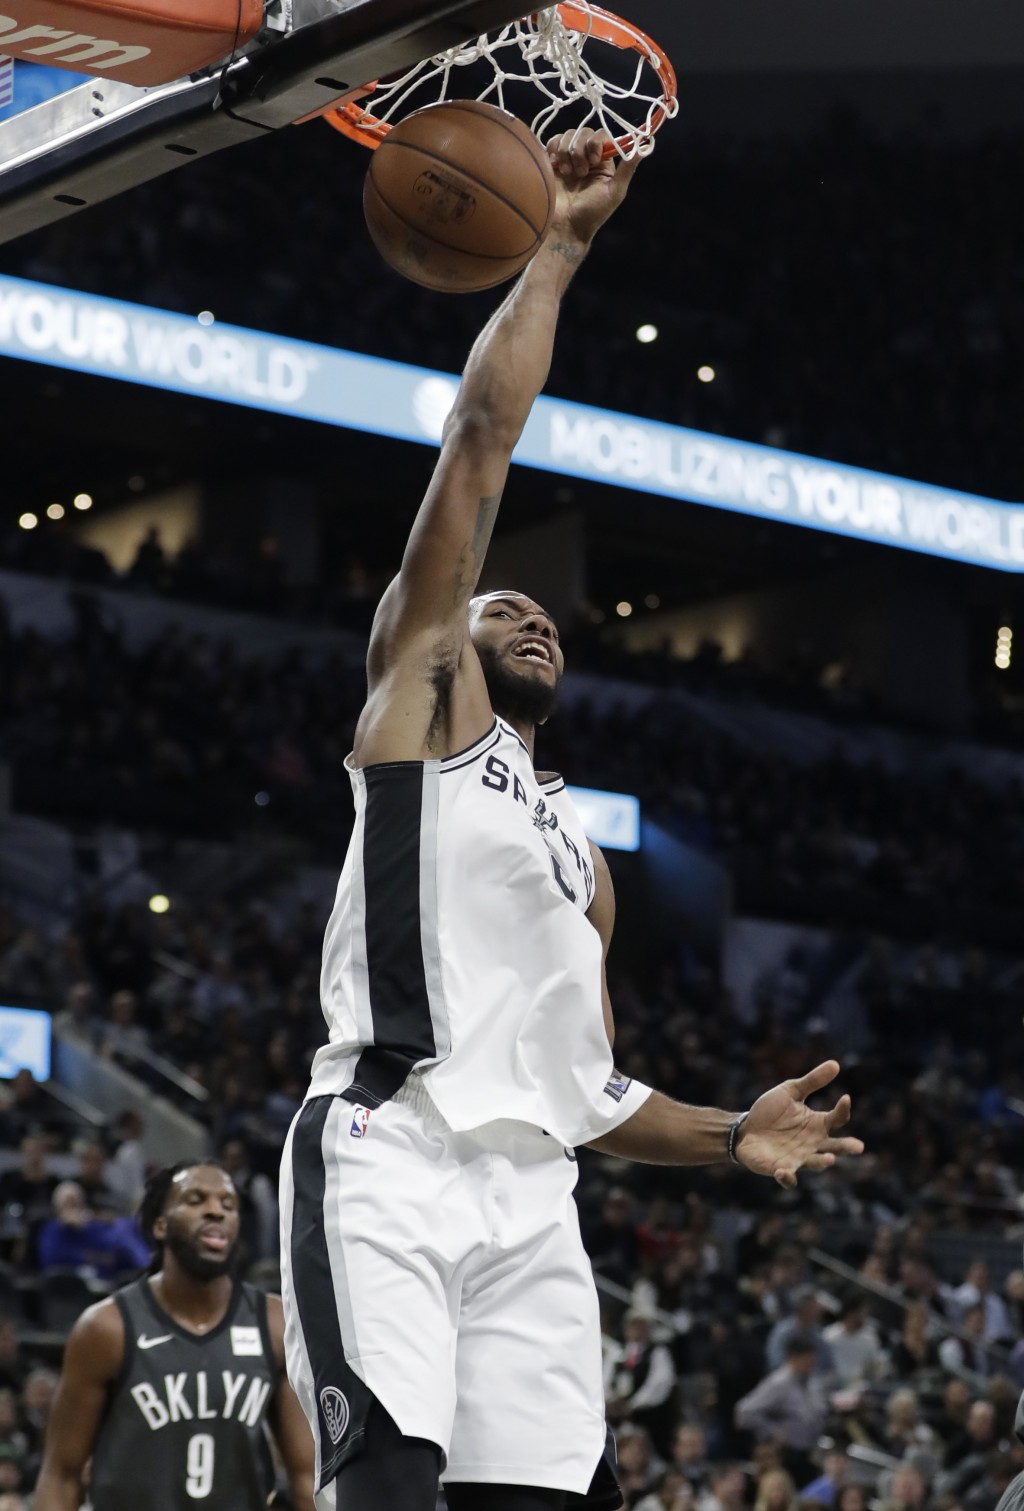 San Antonio Spurs forward Kawhi Leonard scores against the Brooklyn Nets during the first half of an NBA basketball game, Tuesday, Dec. 26, 2017, in S...